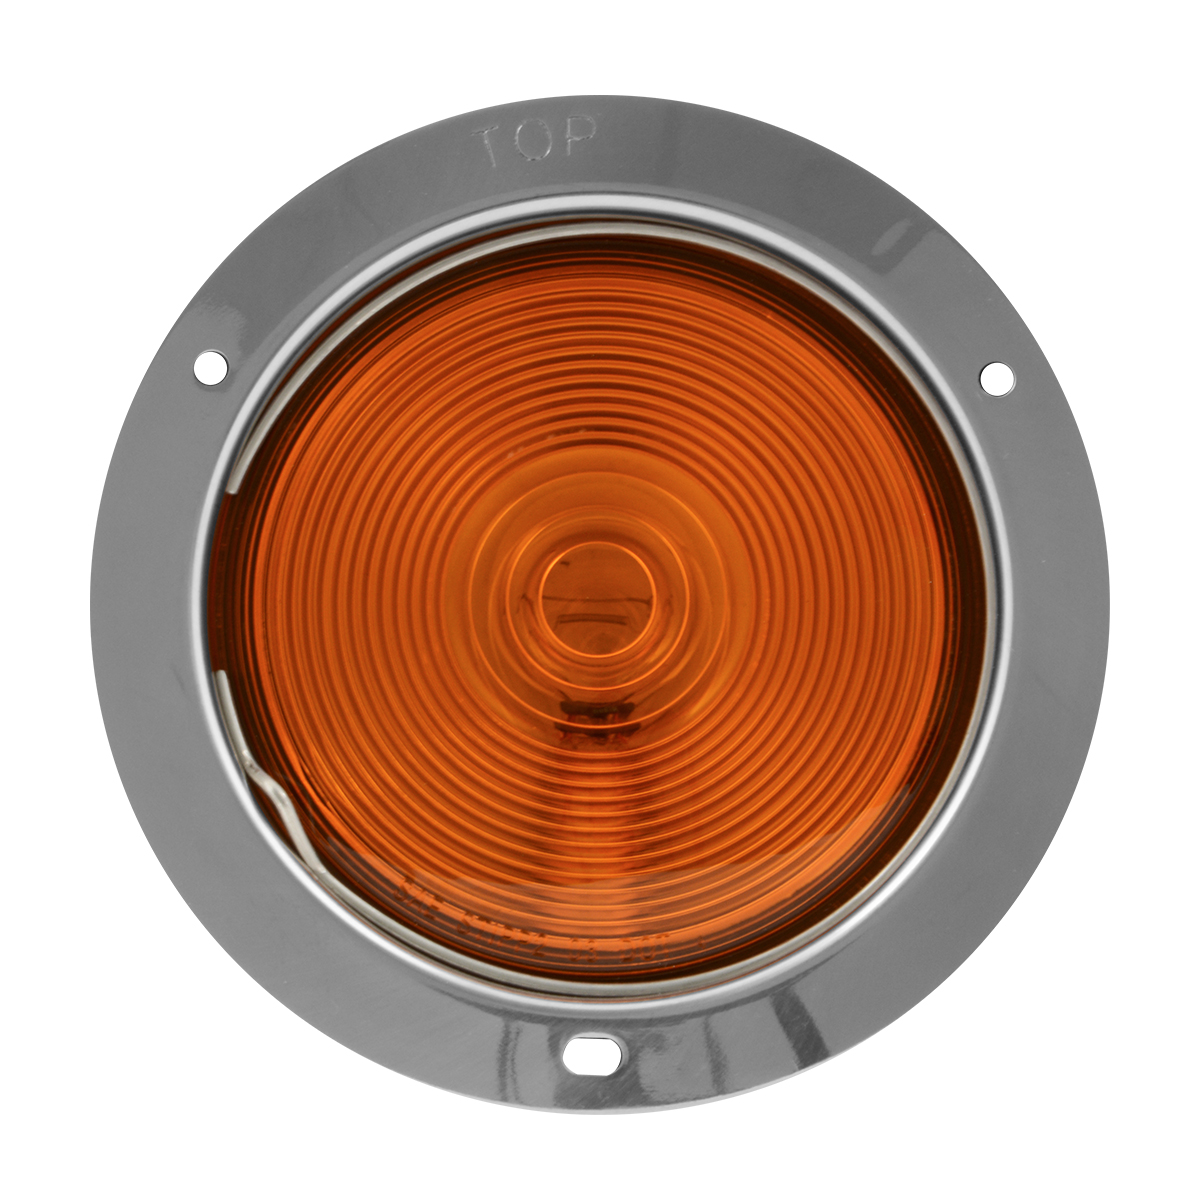 """#90387 4"""" Flange Mount Light with Stainless Steel Housing - Amber Lens"""